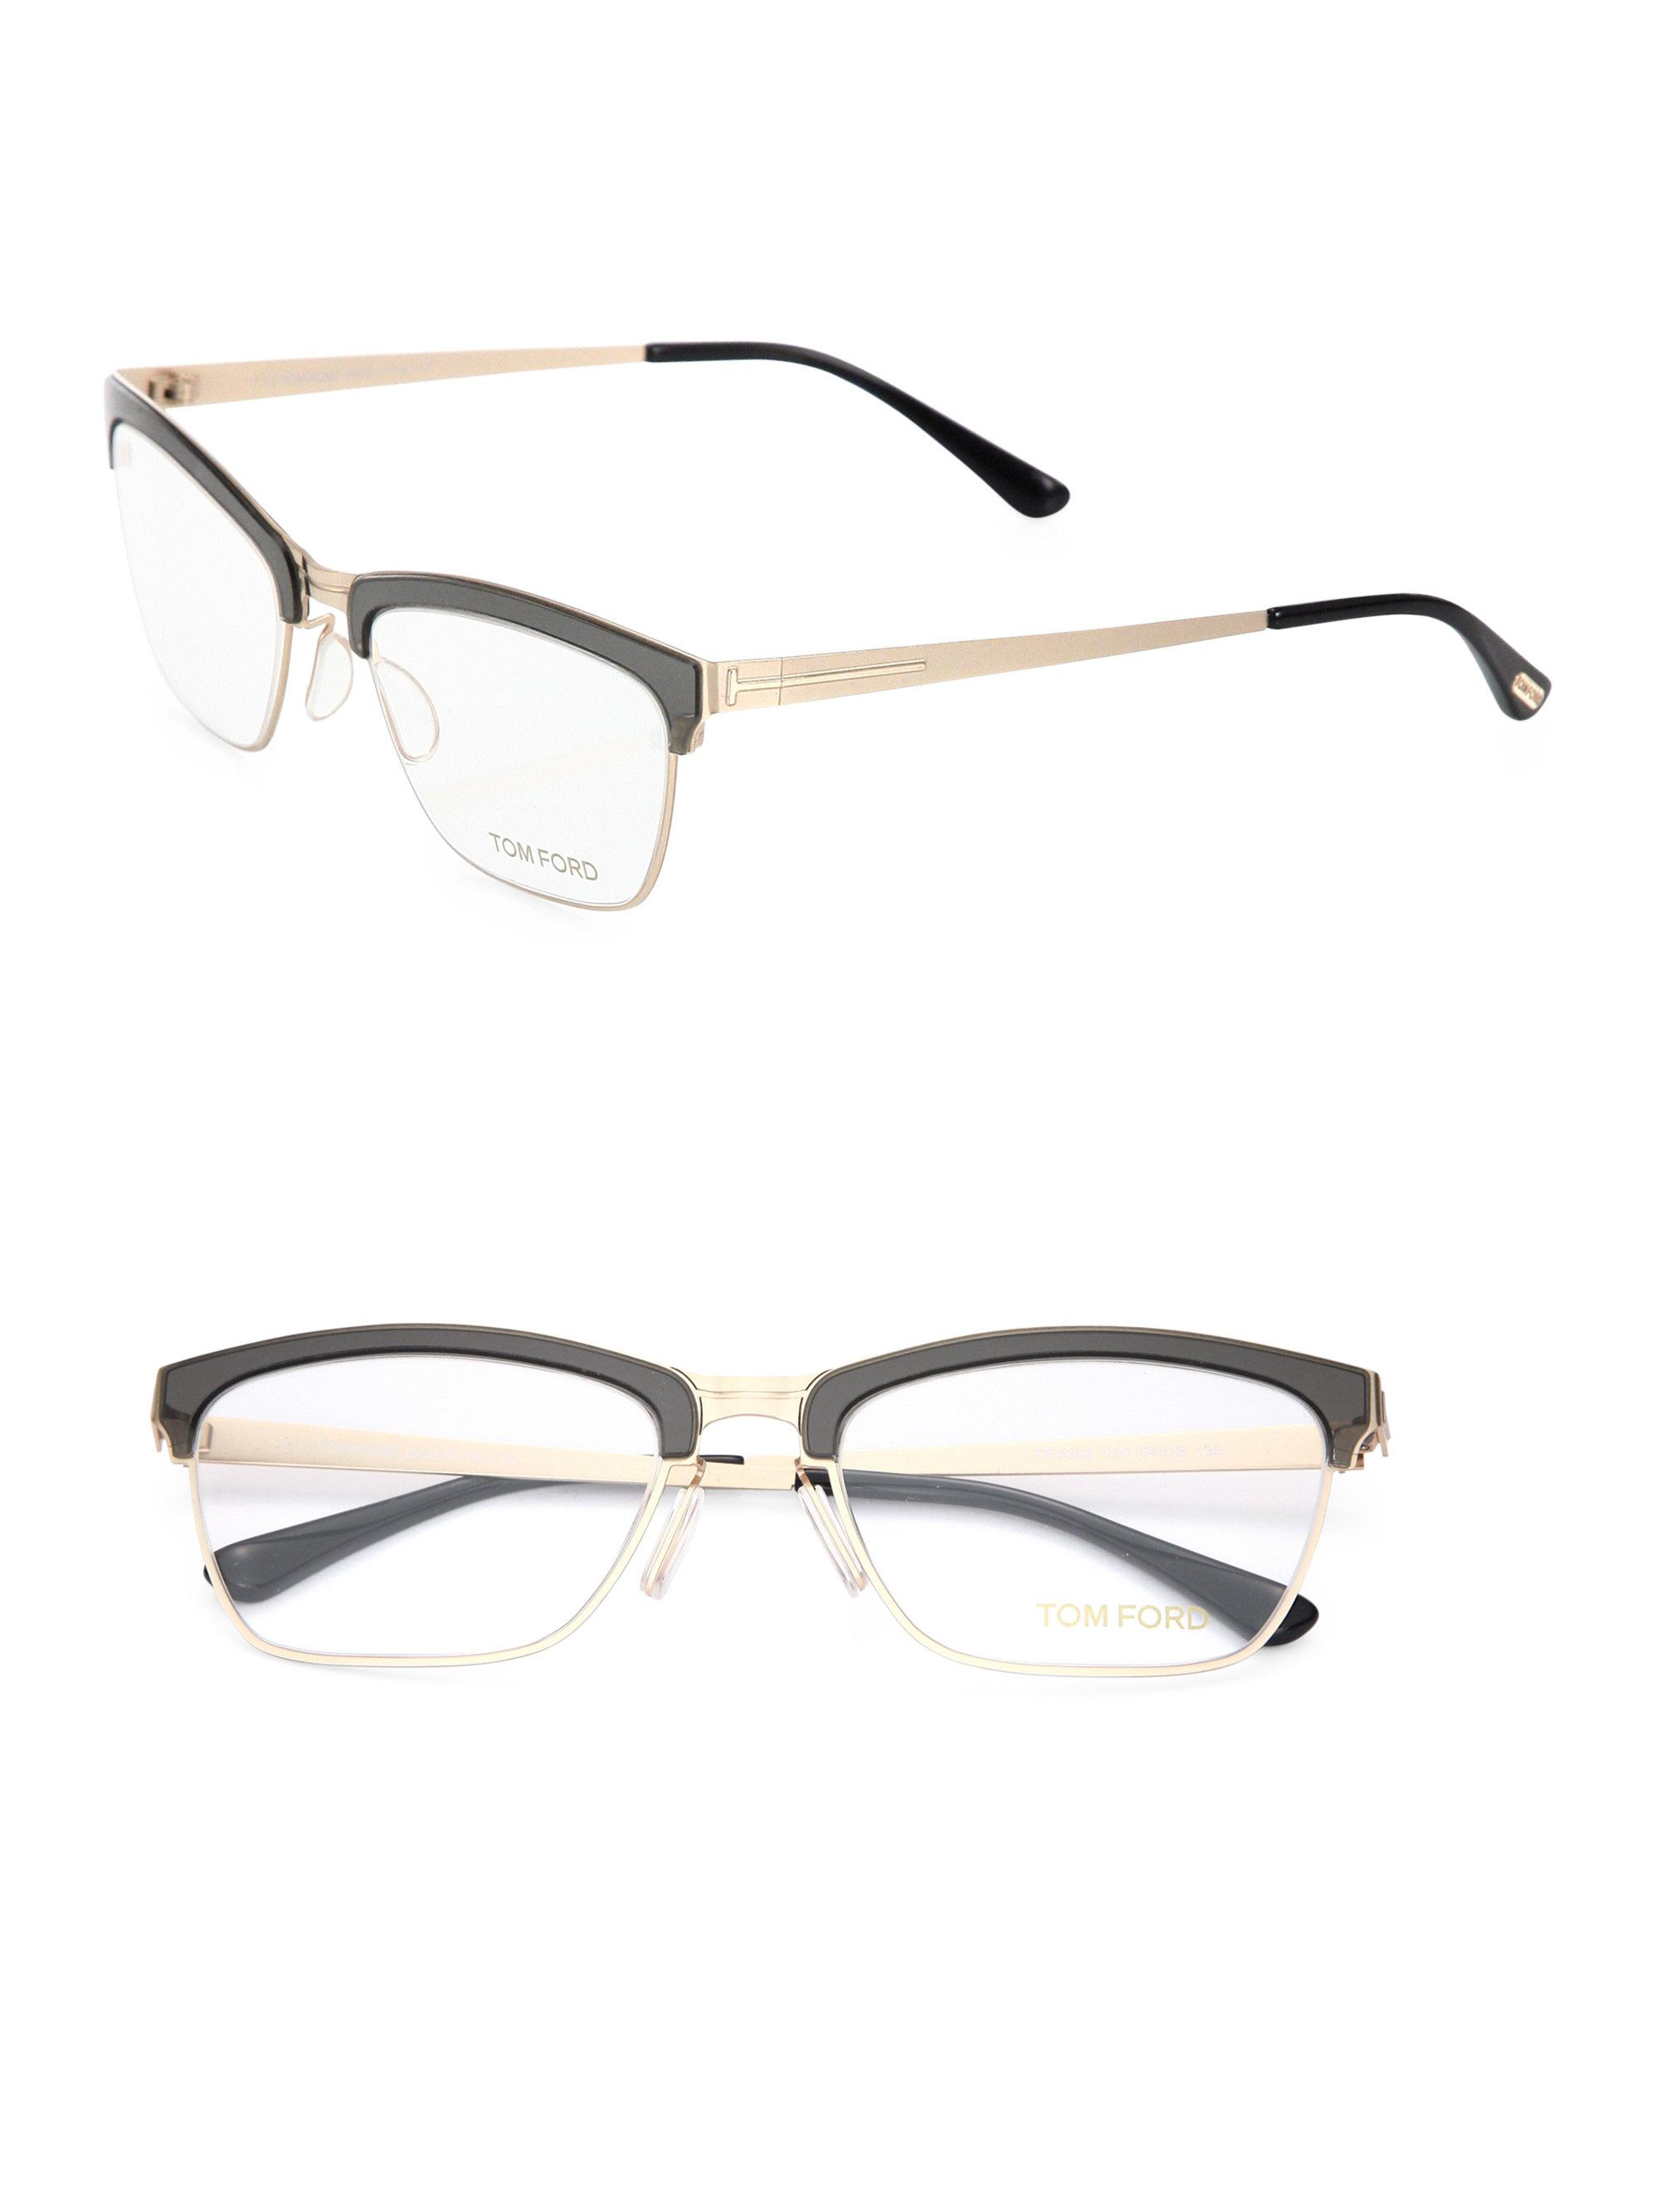 bc9858a10a Tom Ford 54mm Metal Soft Square Optical Glasses in Metallic - Lyst